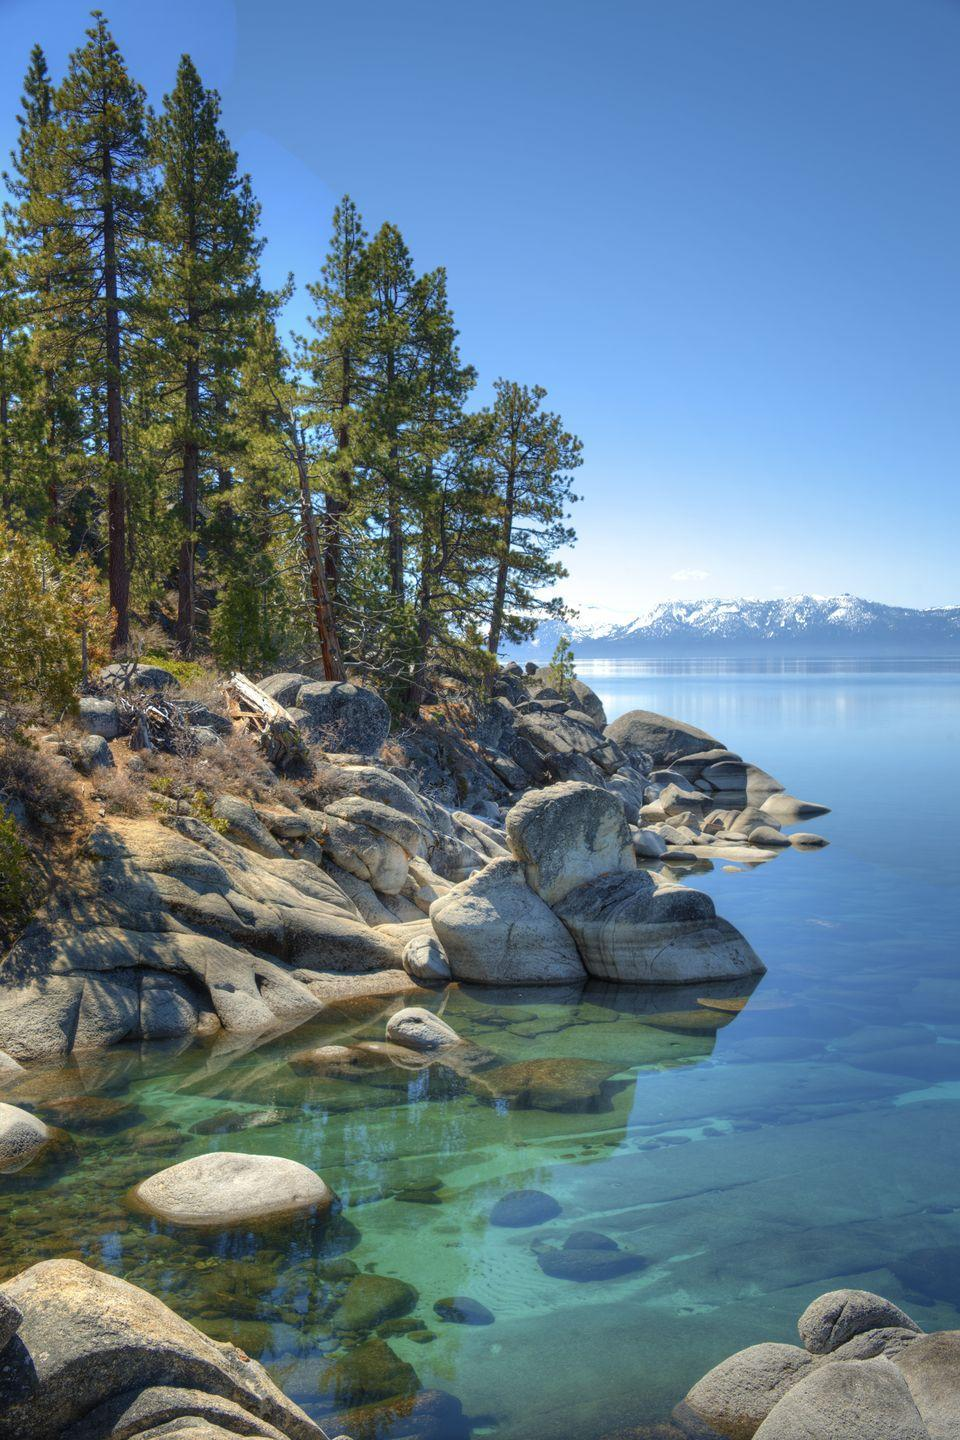 <p><strong>Population:</strong> 26</p><p><br><br>Just a little more than two dozen residents get to take in the beautiful views of Lake Tahoe offered in this village.<br></p>